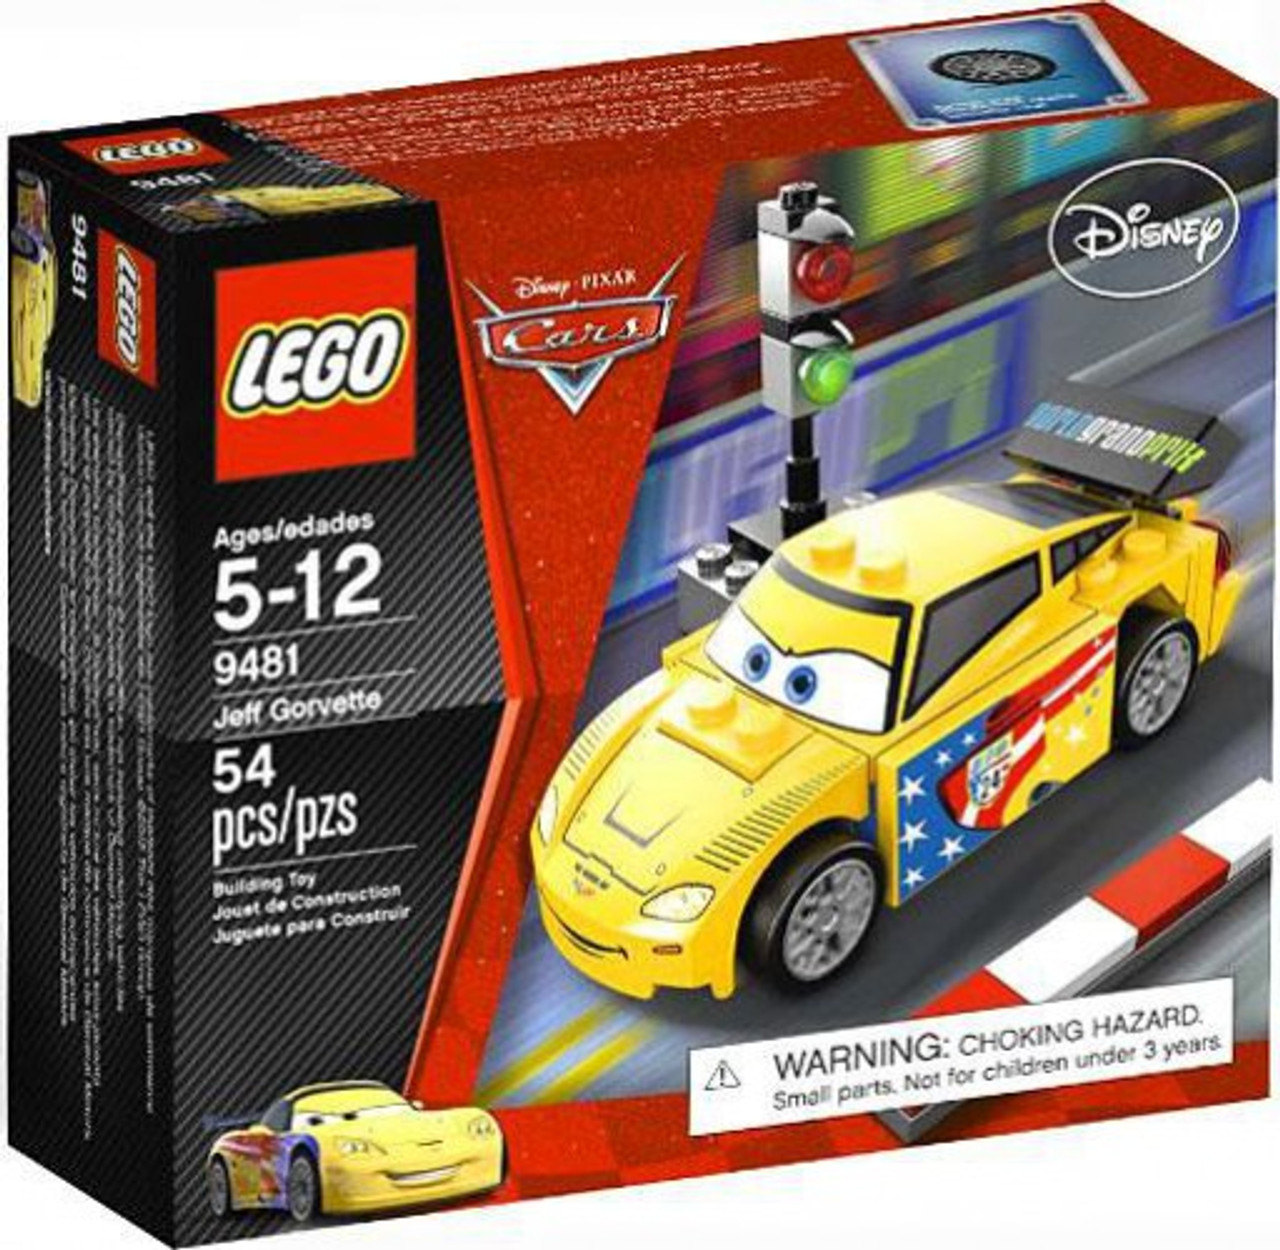 Lego Disney Pixar Cars Jeff Gorvette Set 9481 Toywiz